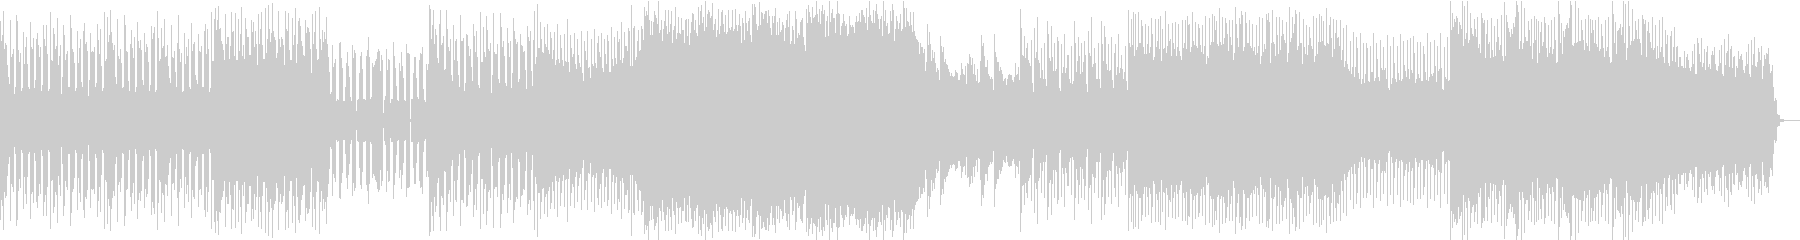 EDM with a warm atmosphere's unreproduced waveform